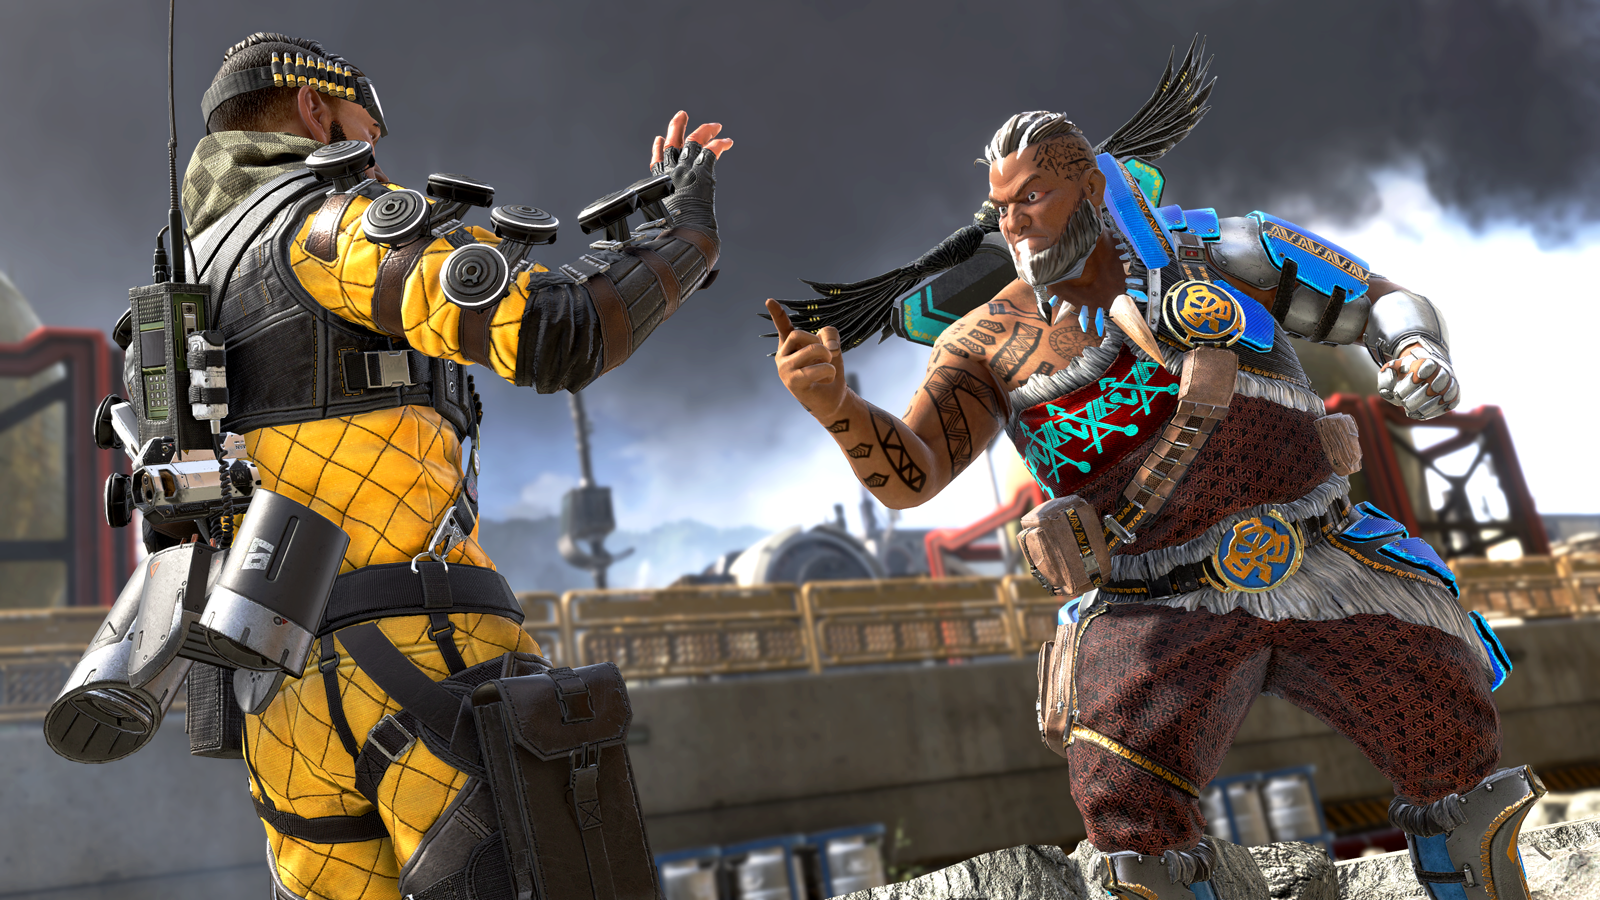 Apex Legends Solo Mode Has a Problem With Cheaters